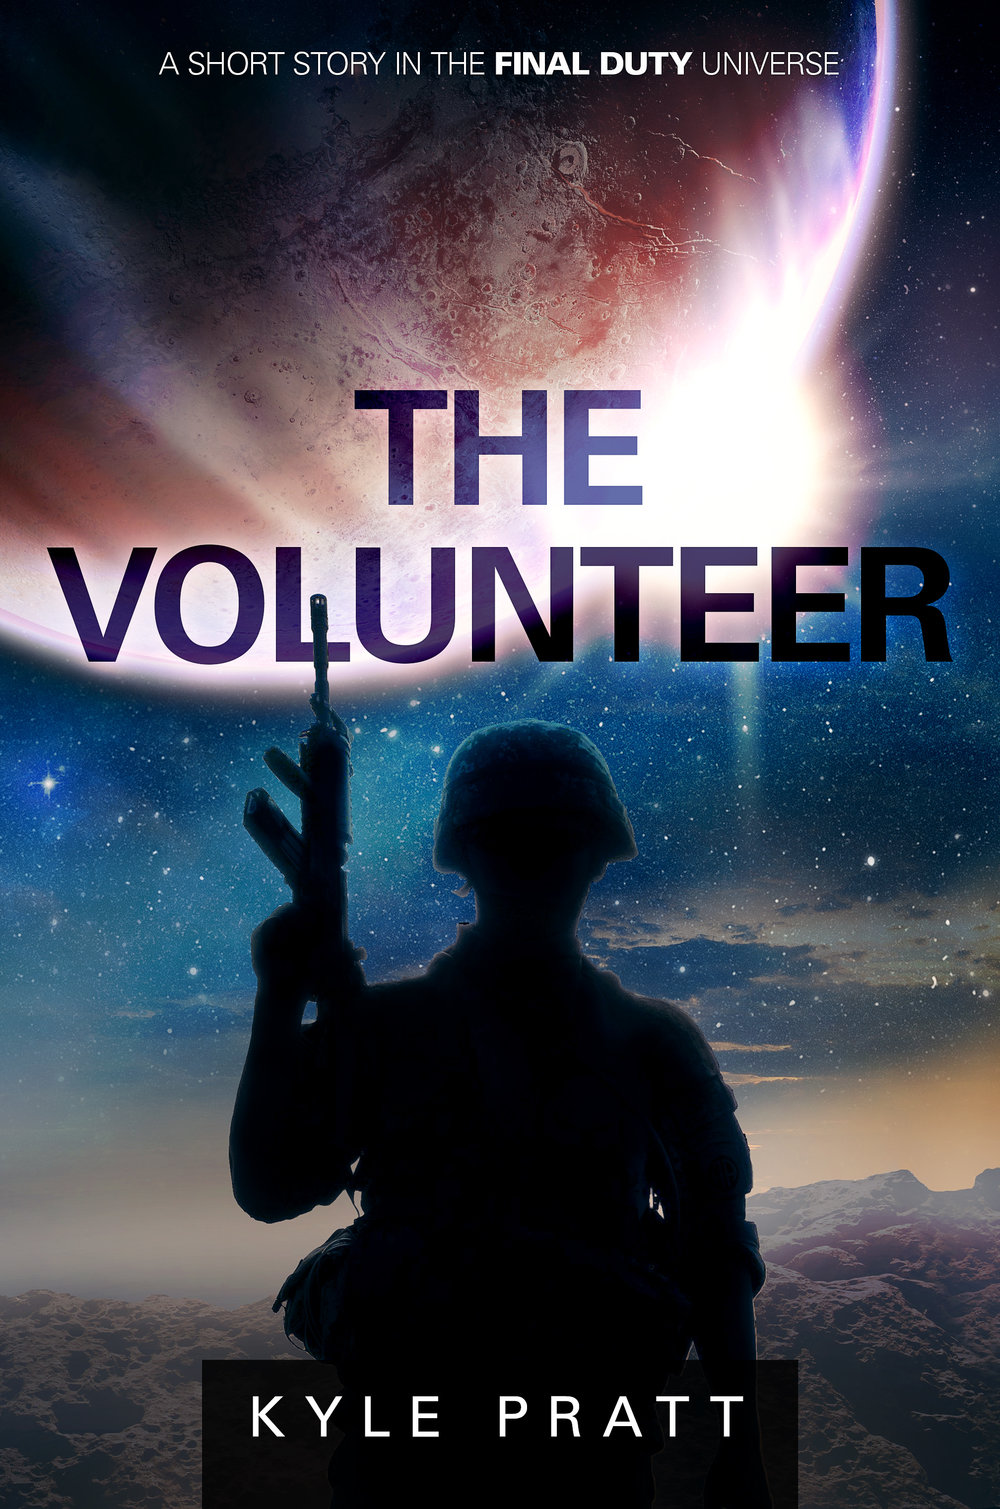 The Volunteer    Scheduled for release on June 2, 2017   After the hex attack Earth, Garvin Blake wants to impress his girlfriend and be something of a hero and so agrees to be cloned.  The Volunteer , my fourth story in the Final Duty universe, is a flash fiction piece of about 1,000-words.  The Volunteer  and  Infinite Darkness  are two stories that originate from a common idea. However,  Infinite Darkness  takes a sad, but hopeful turn while The Volunteer heads in a darker direction.  The Volunteer is available  free  to newsletter subscribers. Sign up on my  website contact page , or on NoiseTrade.com.